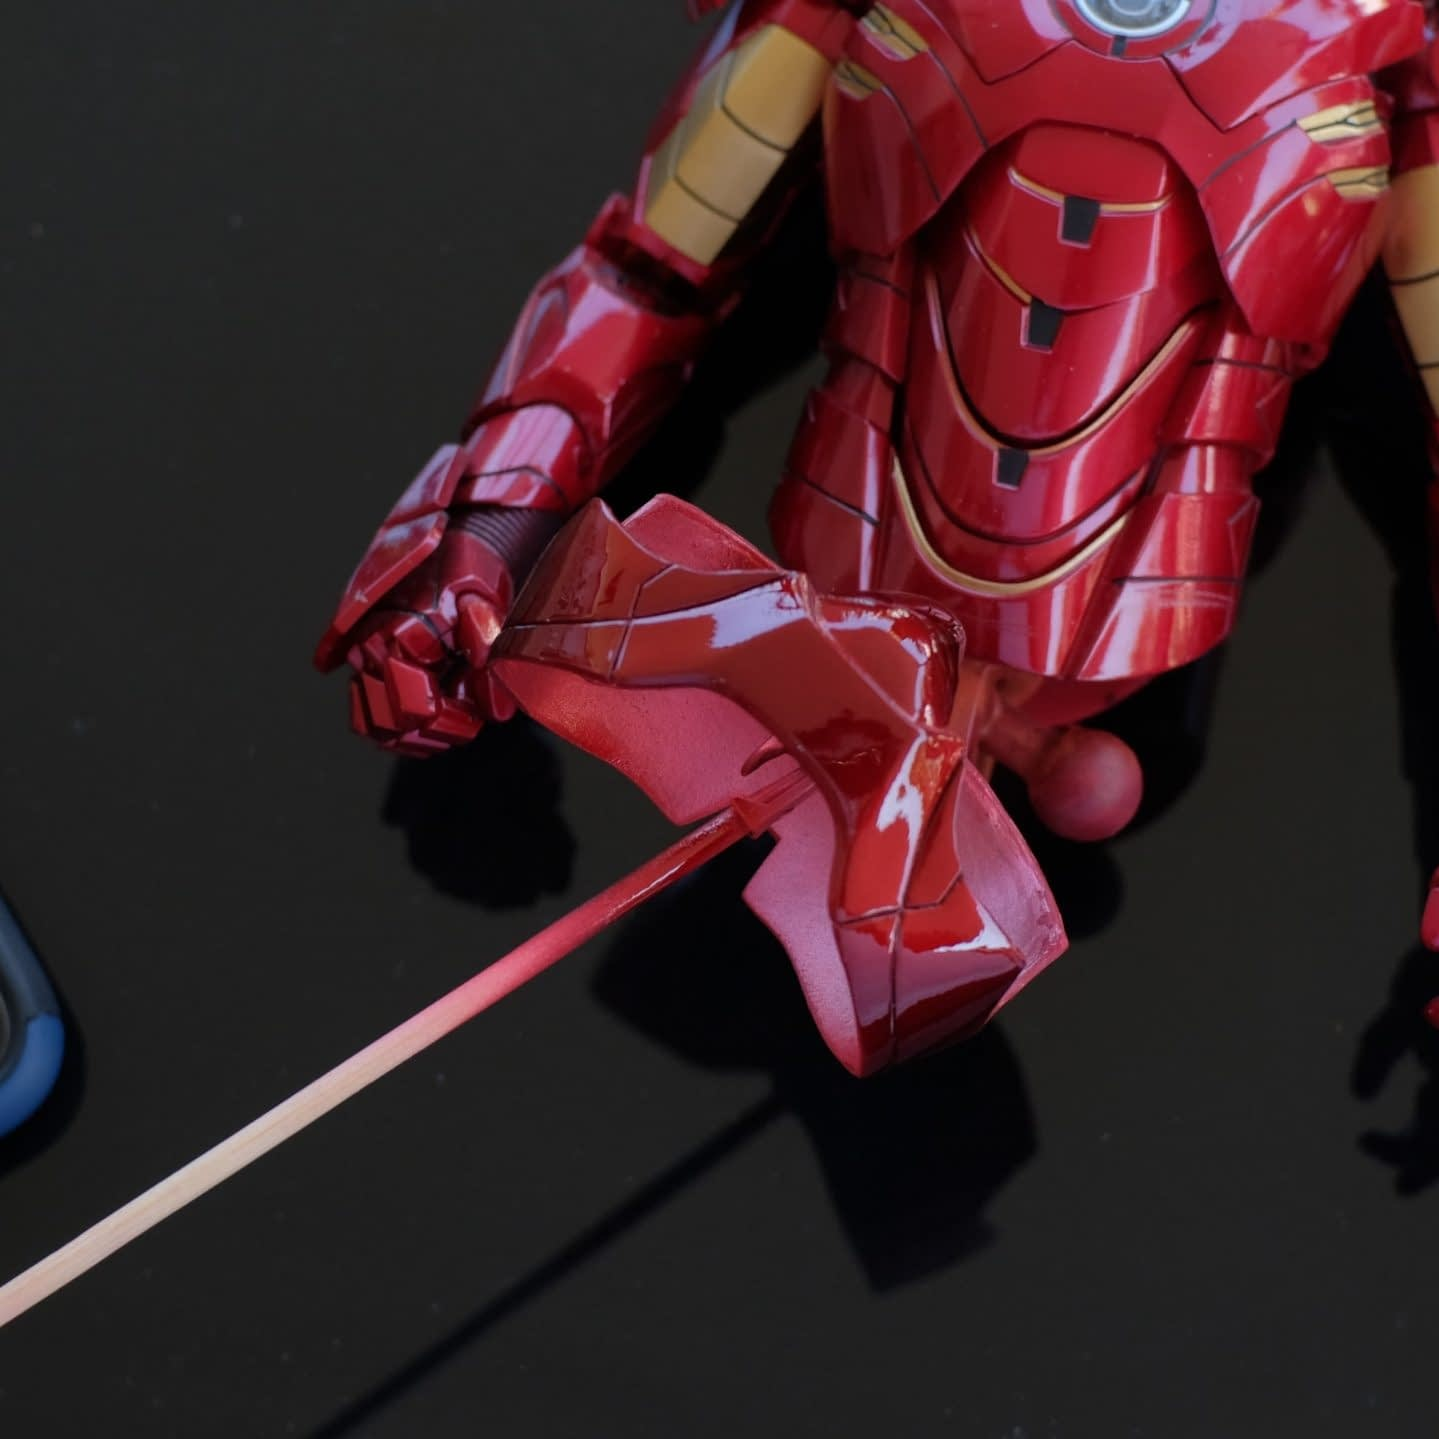 How to fix HT's Iron Man pink panty issue 31